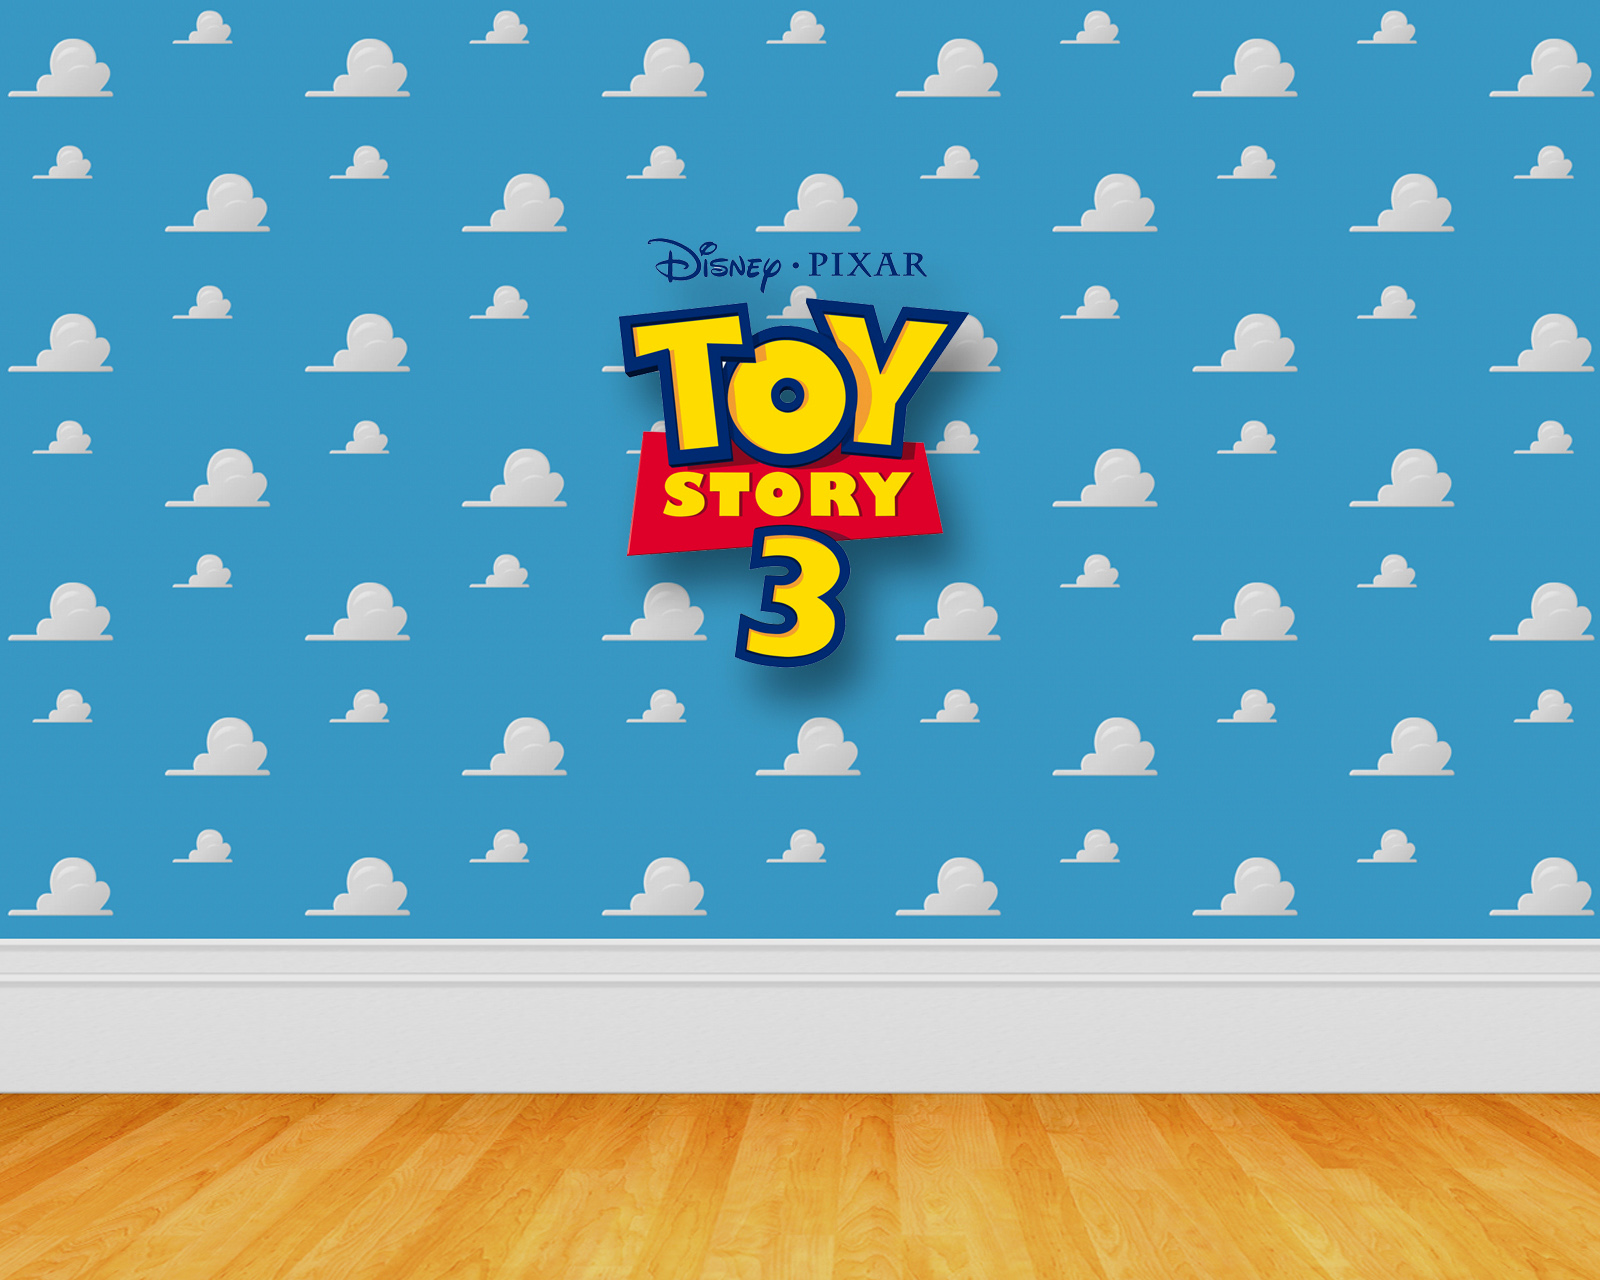 47 toy story cloud wallpaper on wallpapersafari - Toy story wallpaper ...